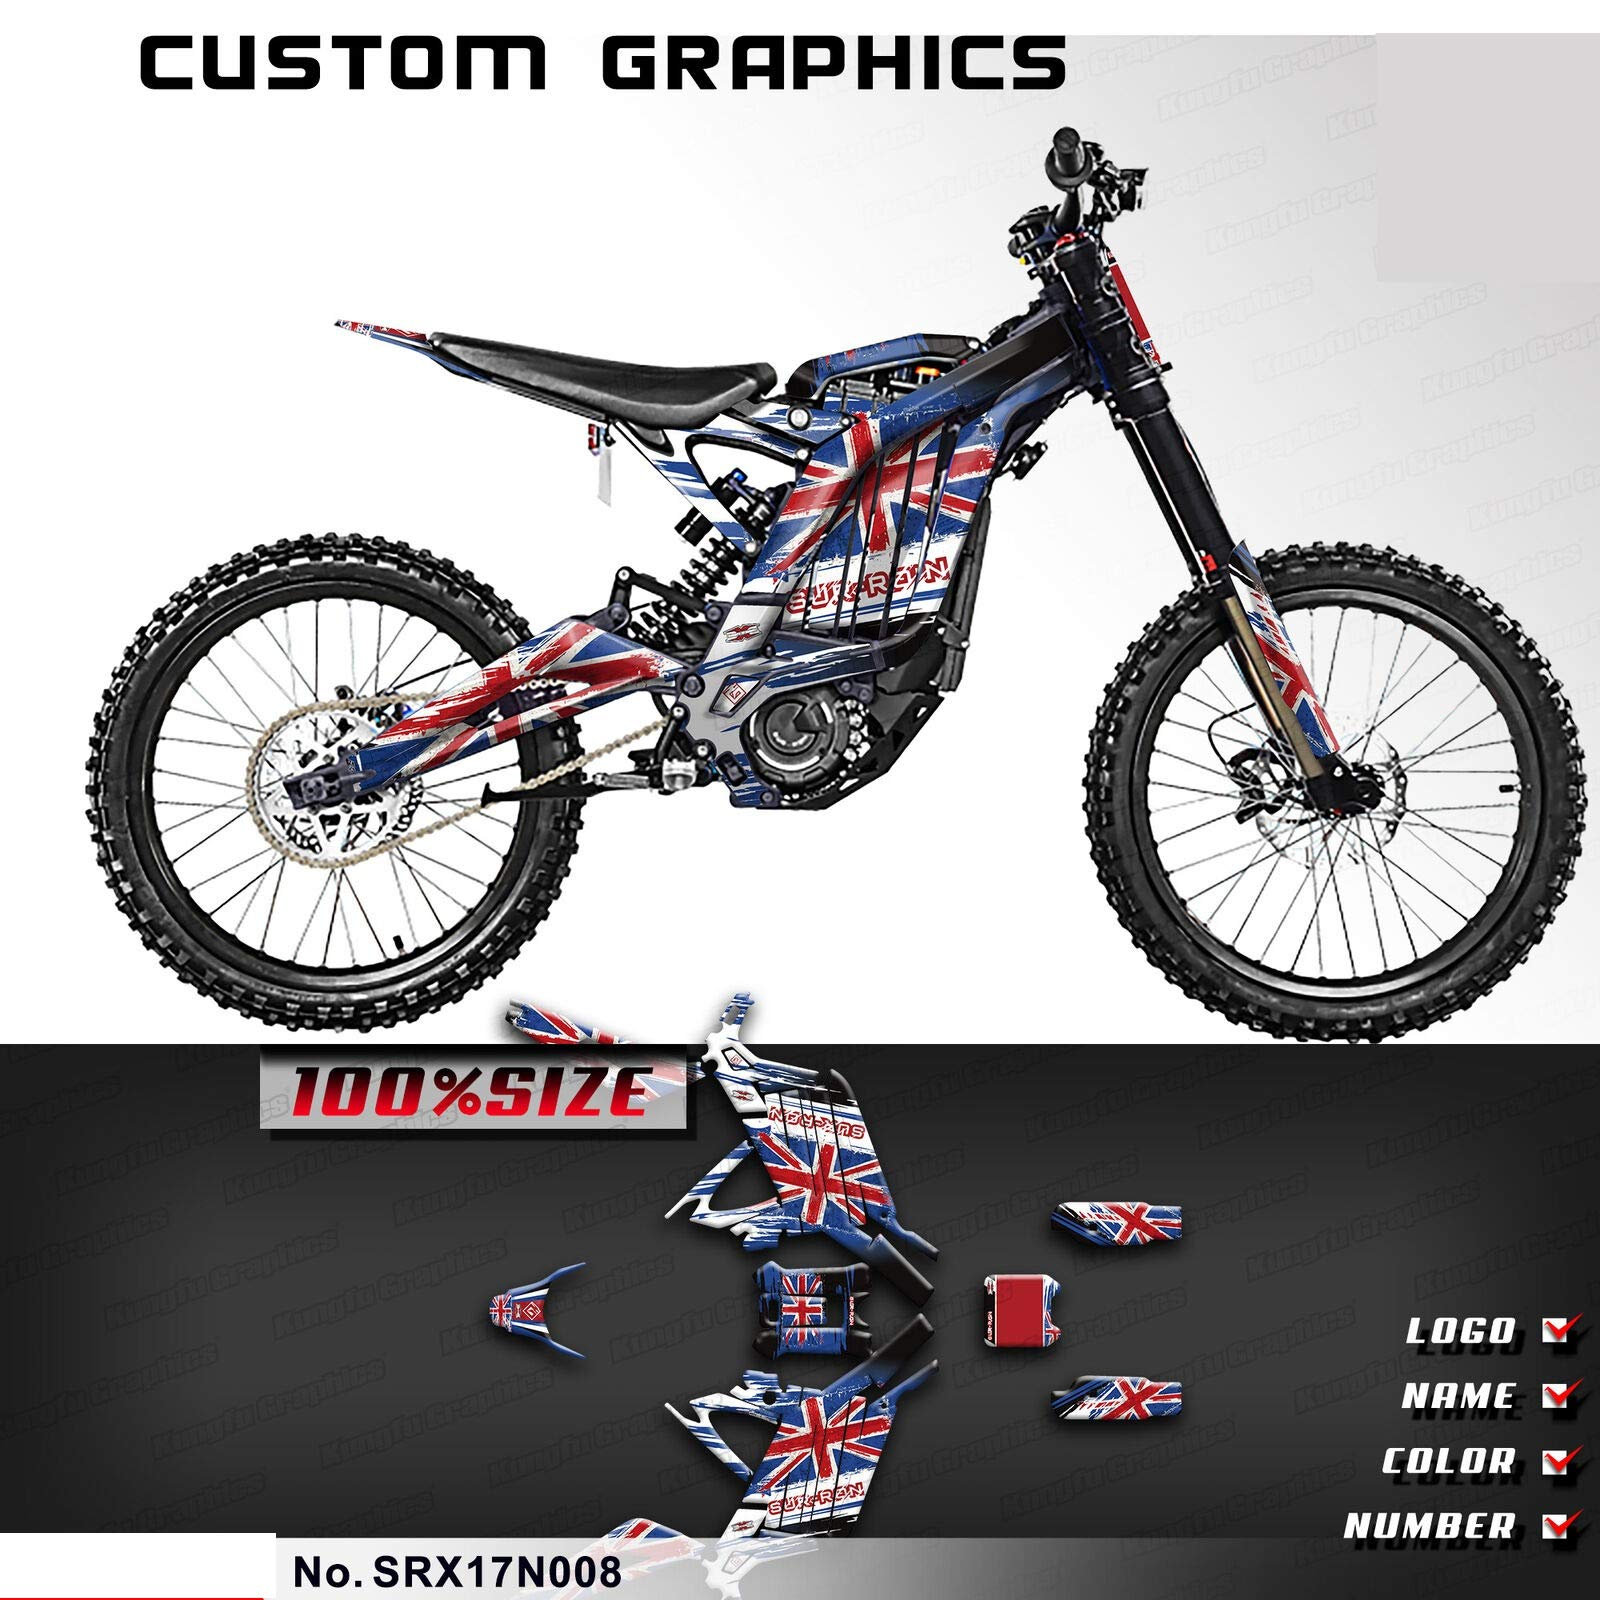 Kungfu Graphics Custom Decal Kit for Sur-Ron Light Bee X Electric Off-Road Motorcycle Dirt Bike, Blue, SRX17N008